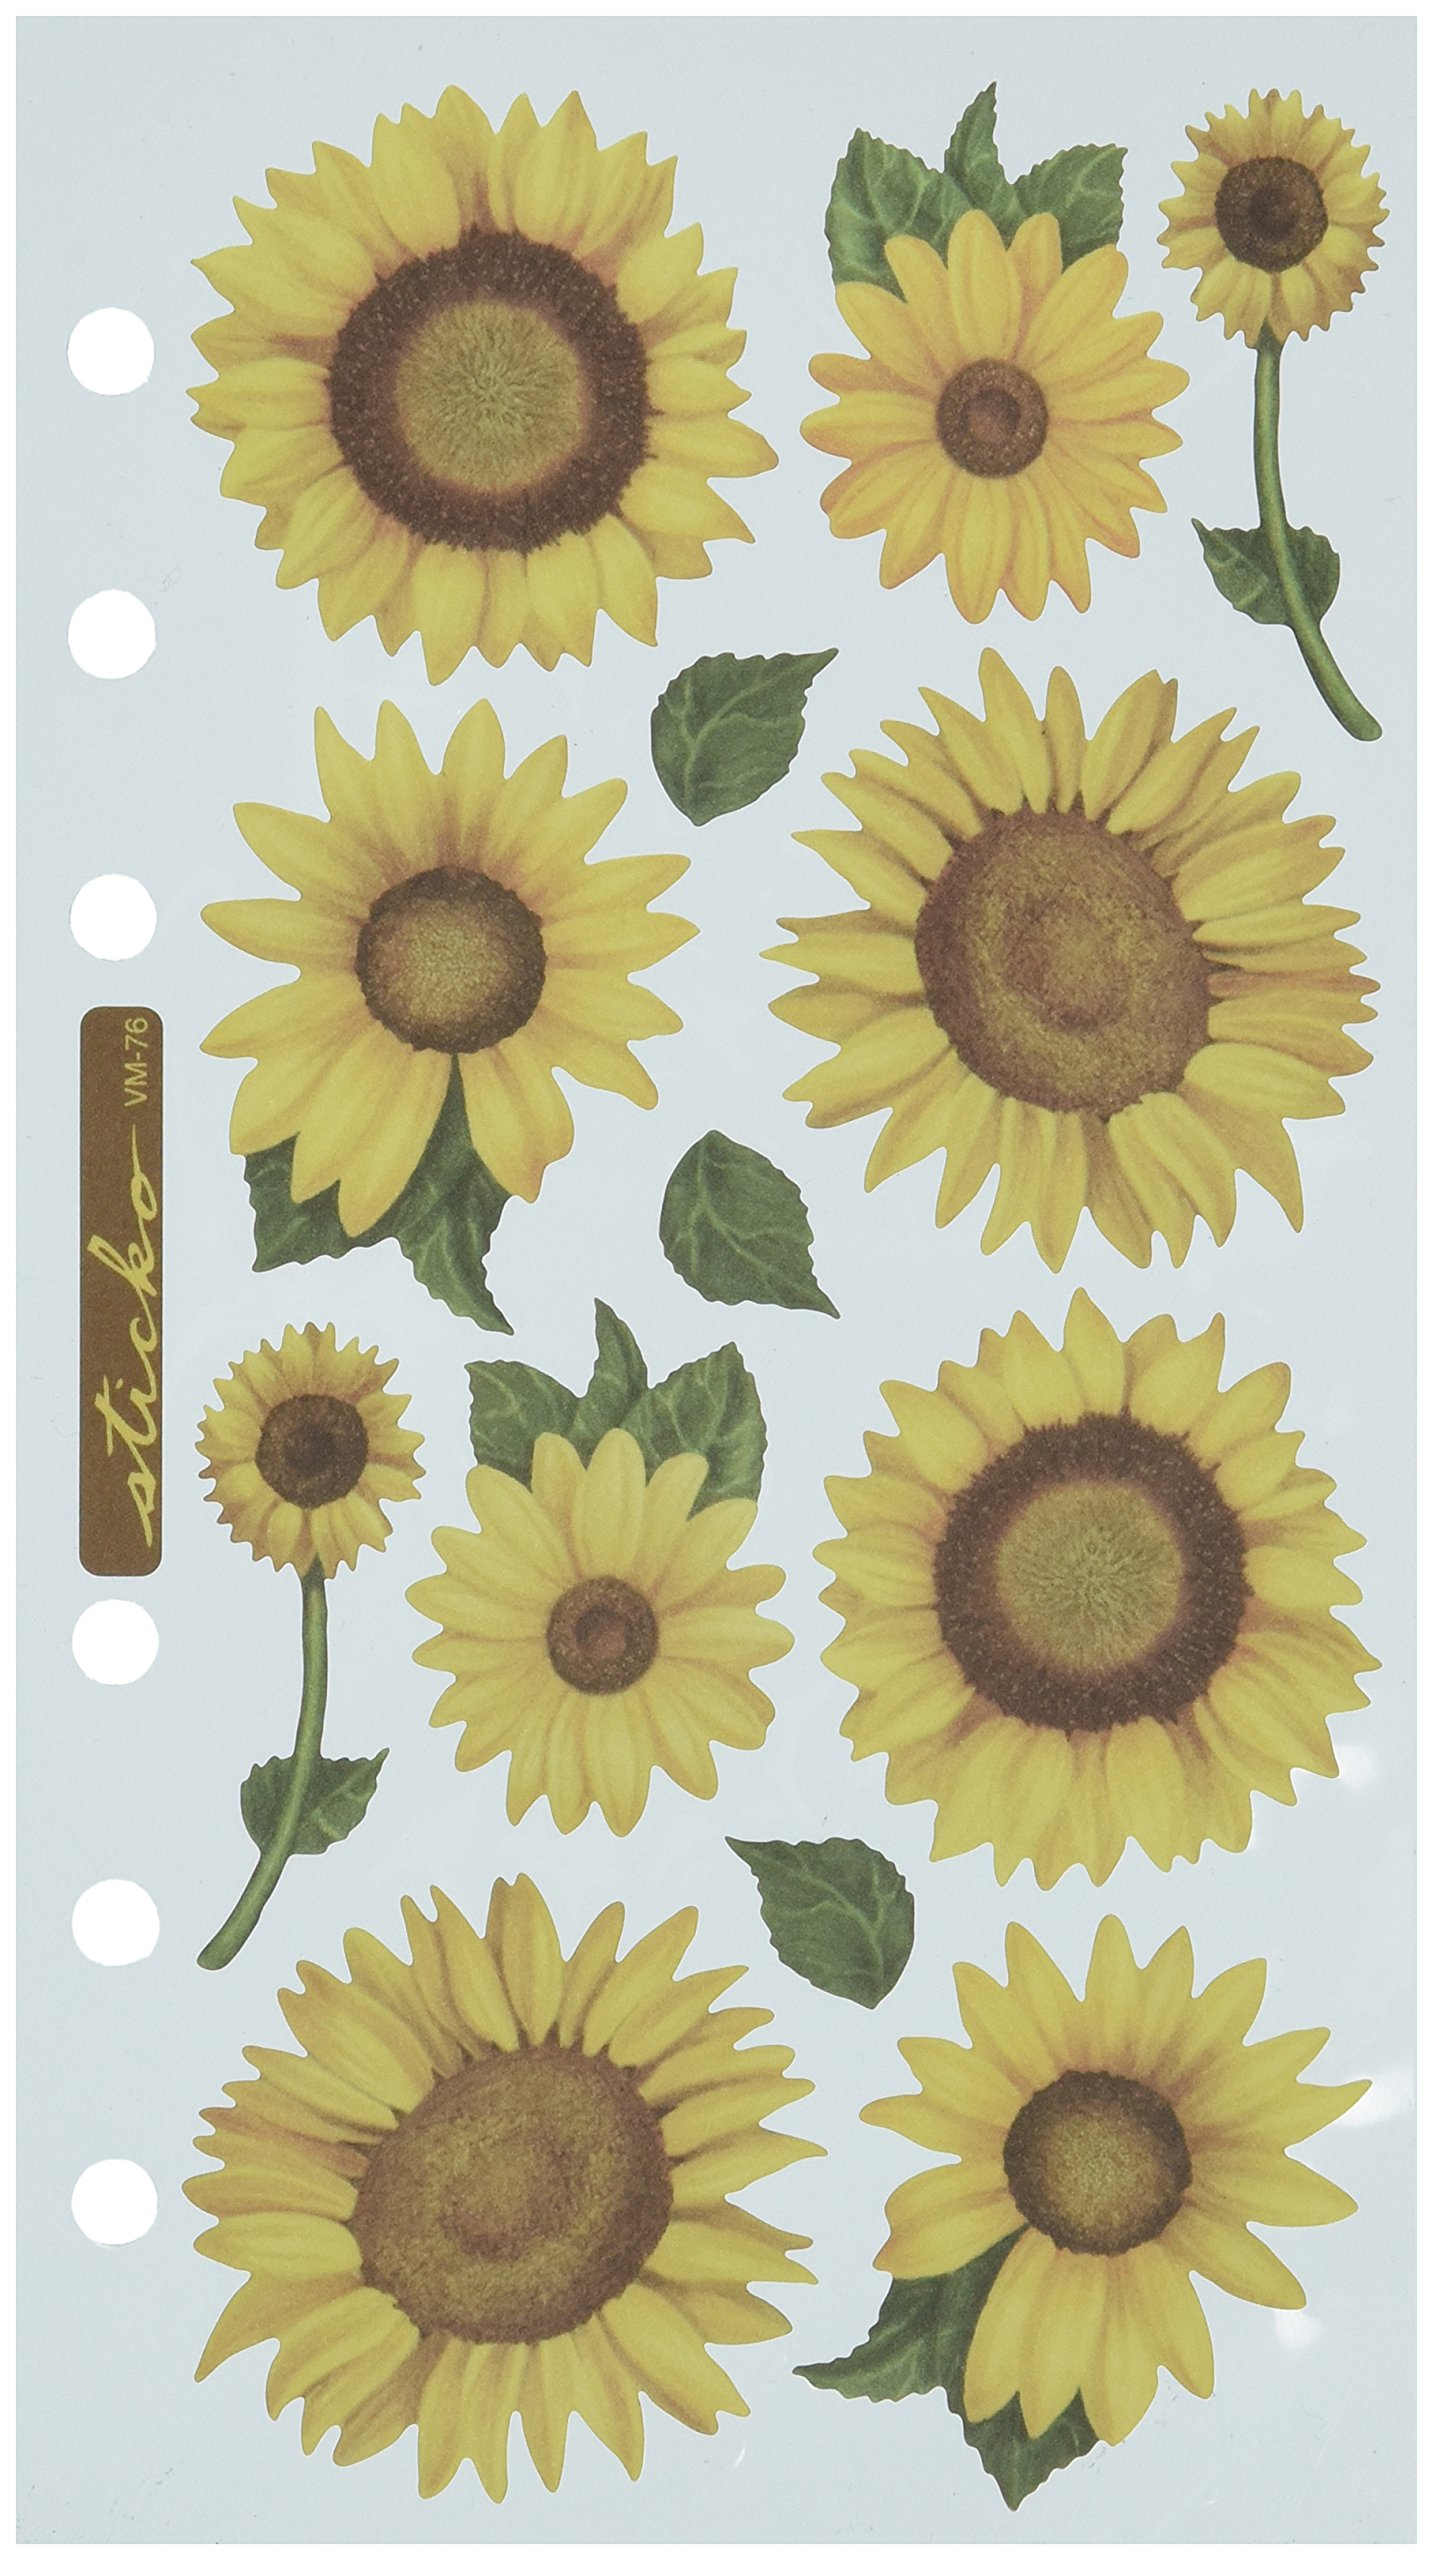 Sticko Stickers, Sunflowers by Sticko (Image #1)